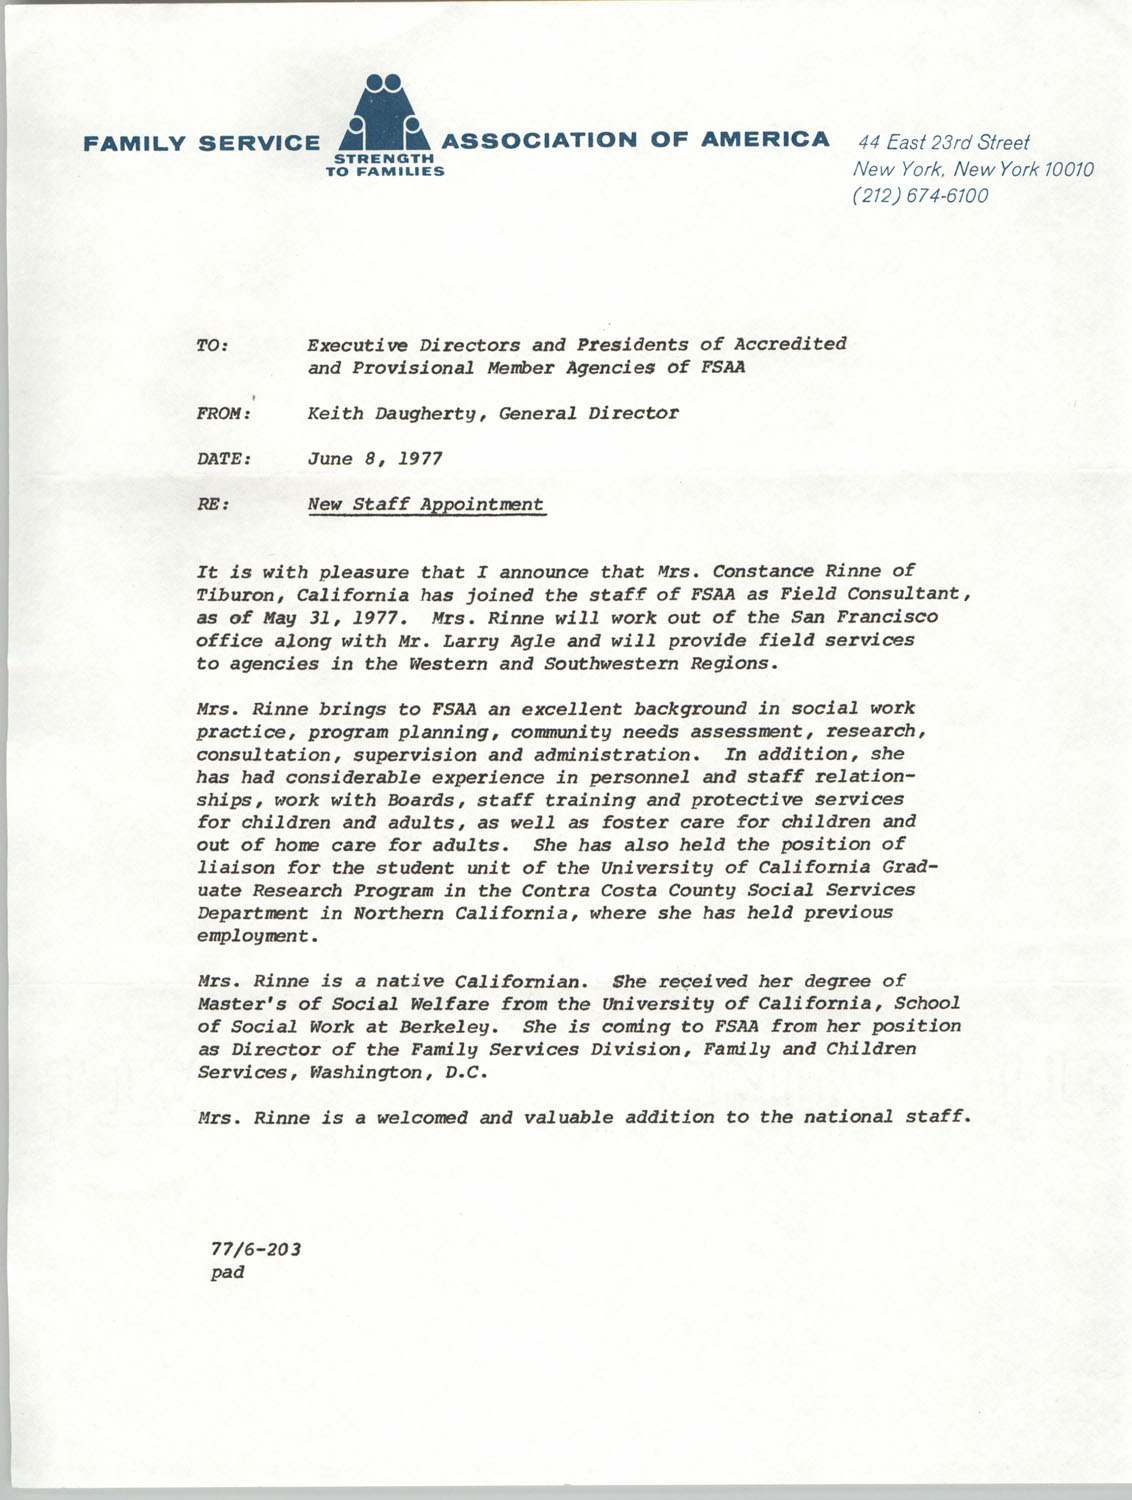 Memorandum from Keith Daugherty to Executive Directors and Presidents of Accredited and Provisional Member Agencies of Family Service Association of America, June 8, 1977